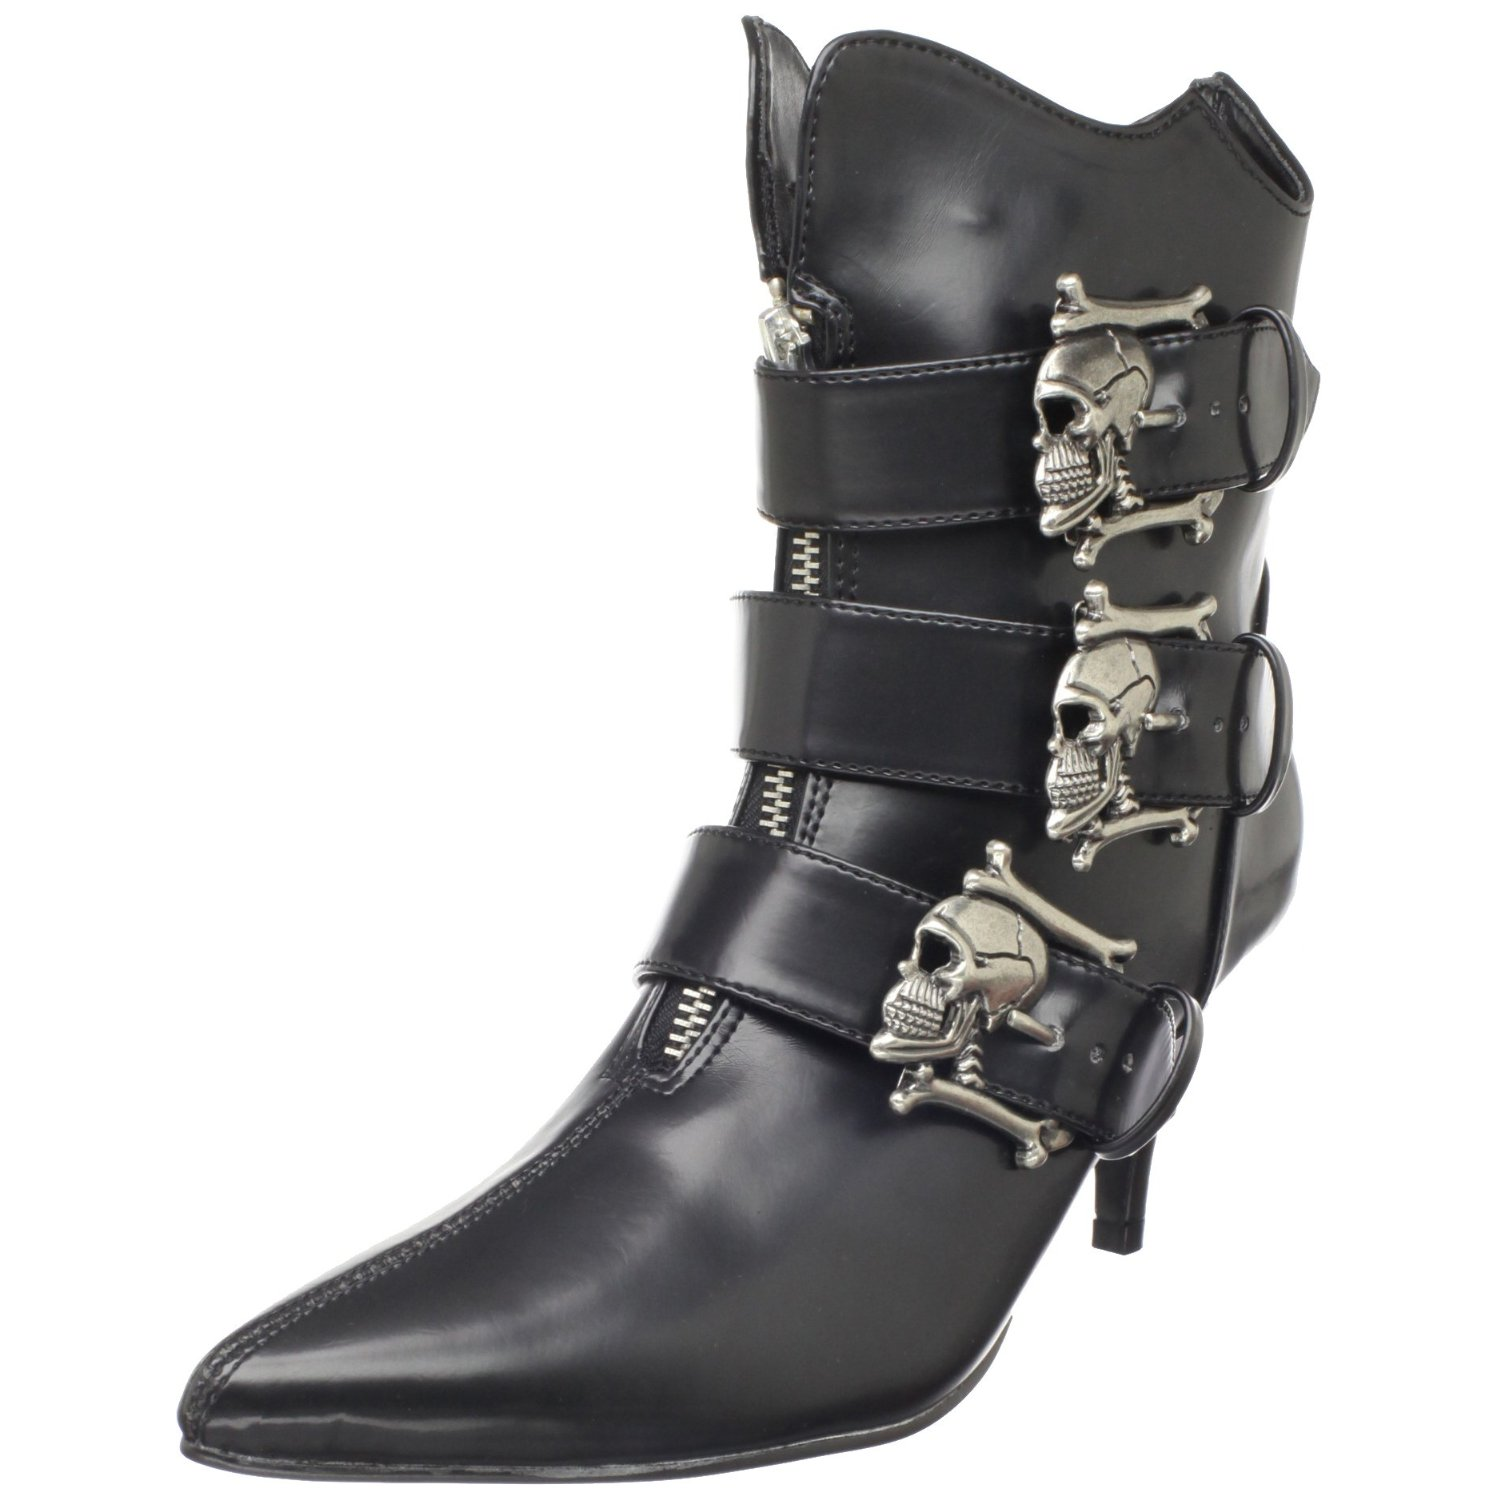 Vegan goth boots with skull buckles